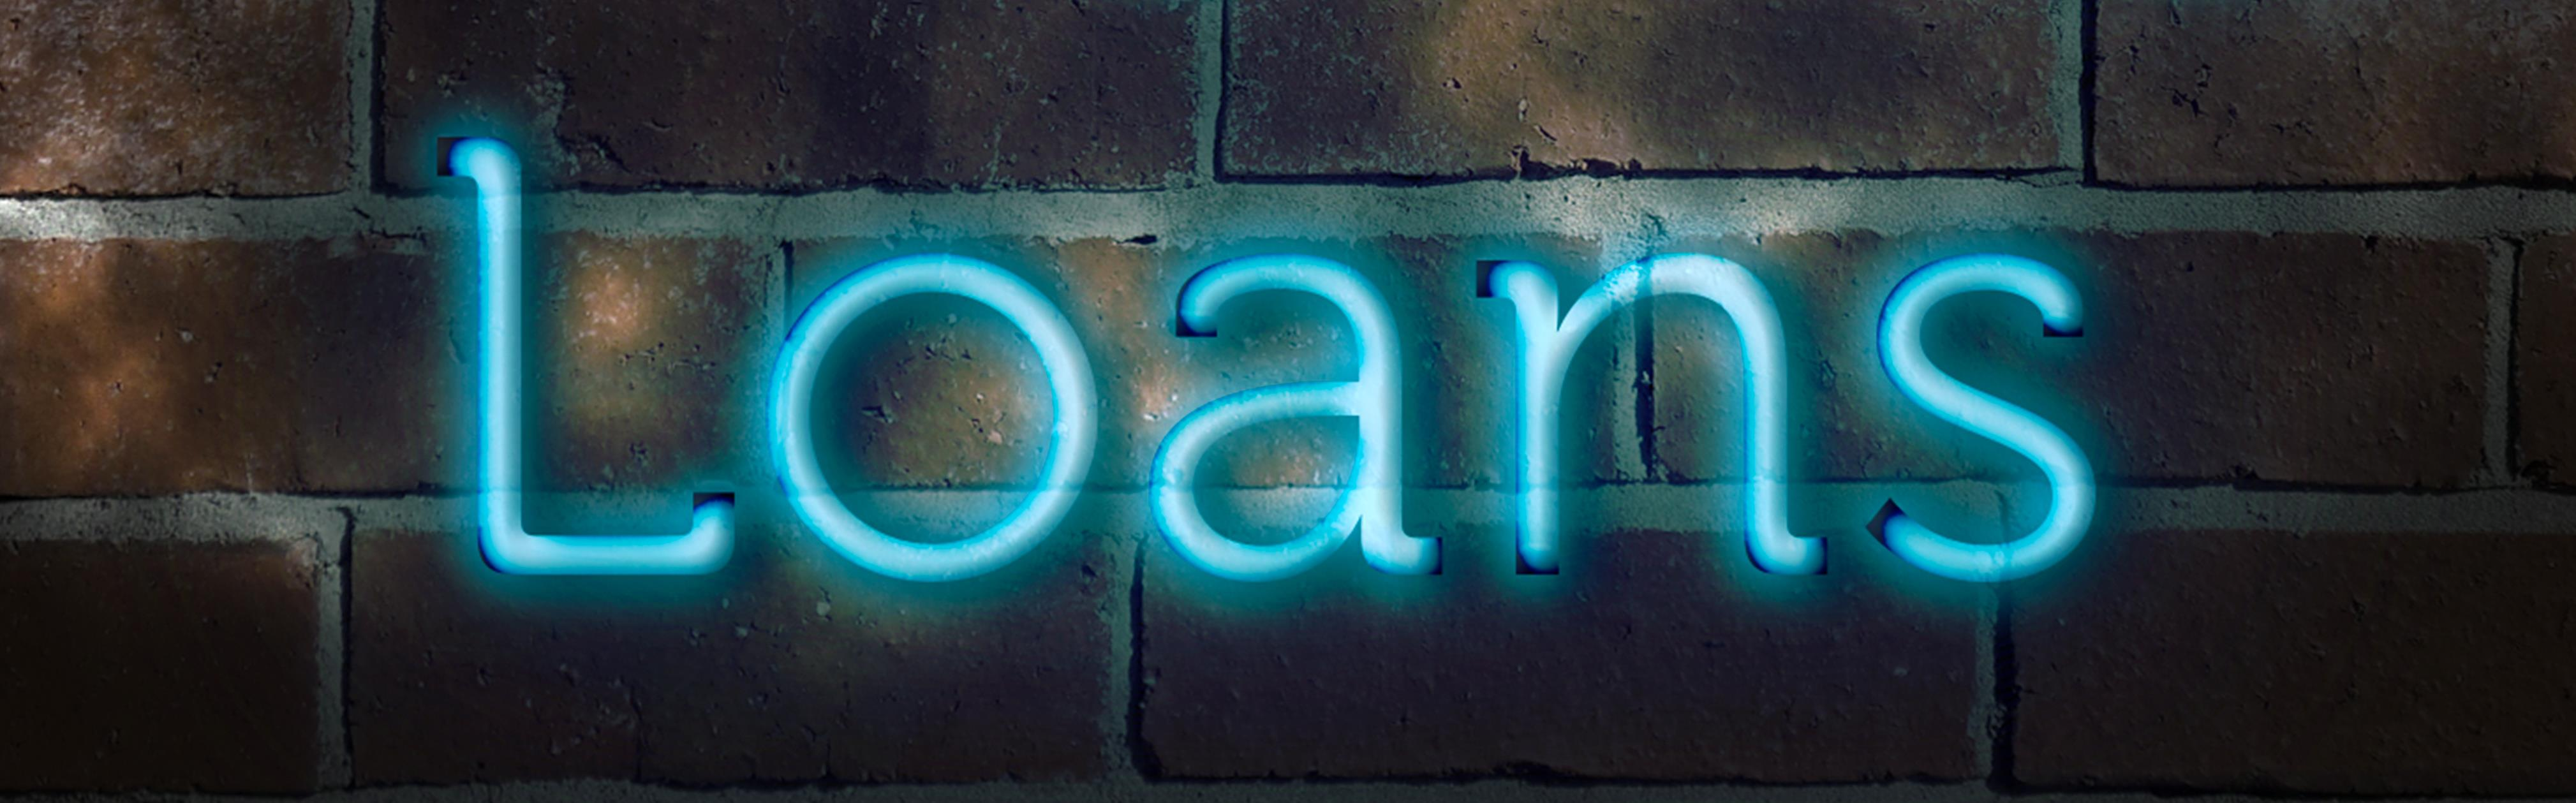 Blue Loan sign with black background